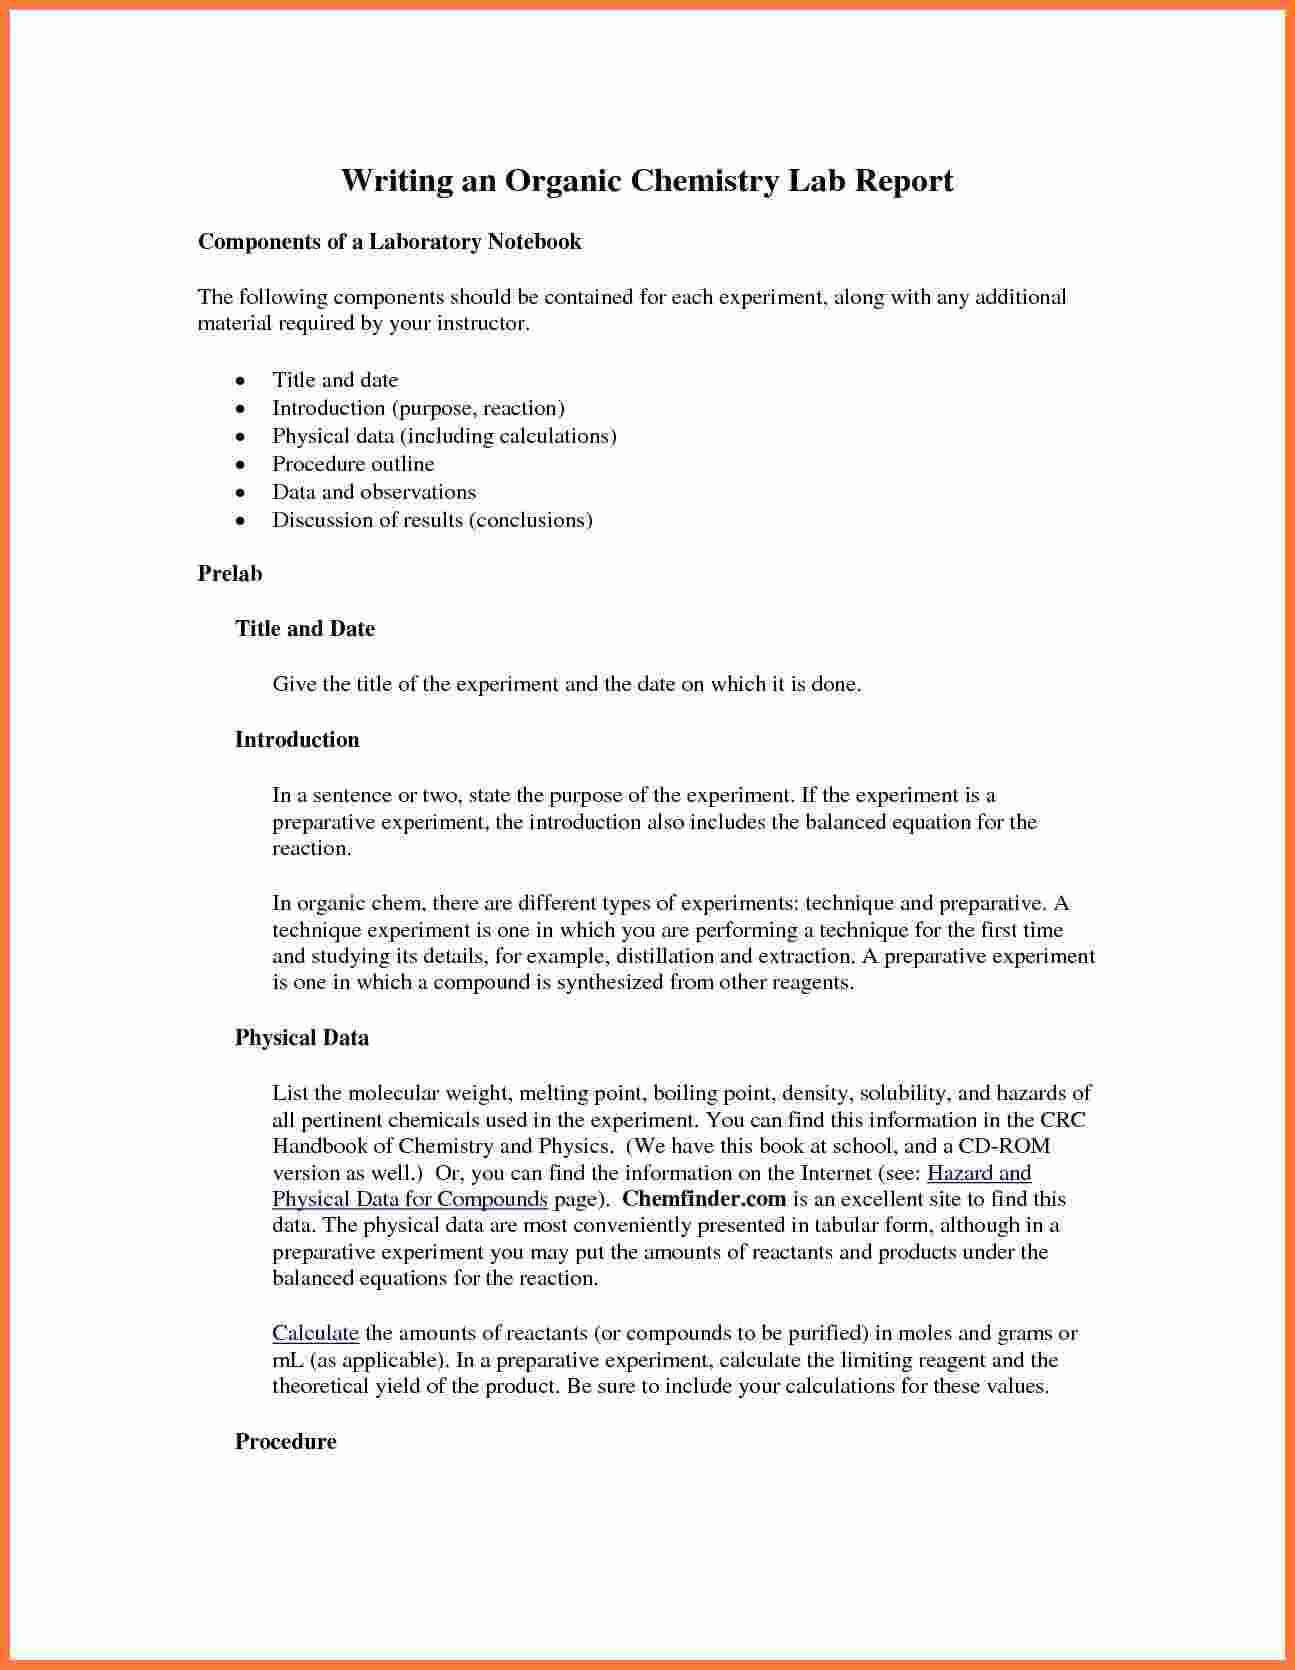 003 Organic Chemistry Lab Report Example Also Ibmistry Intended For Chemistry Lab Report Template